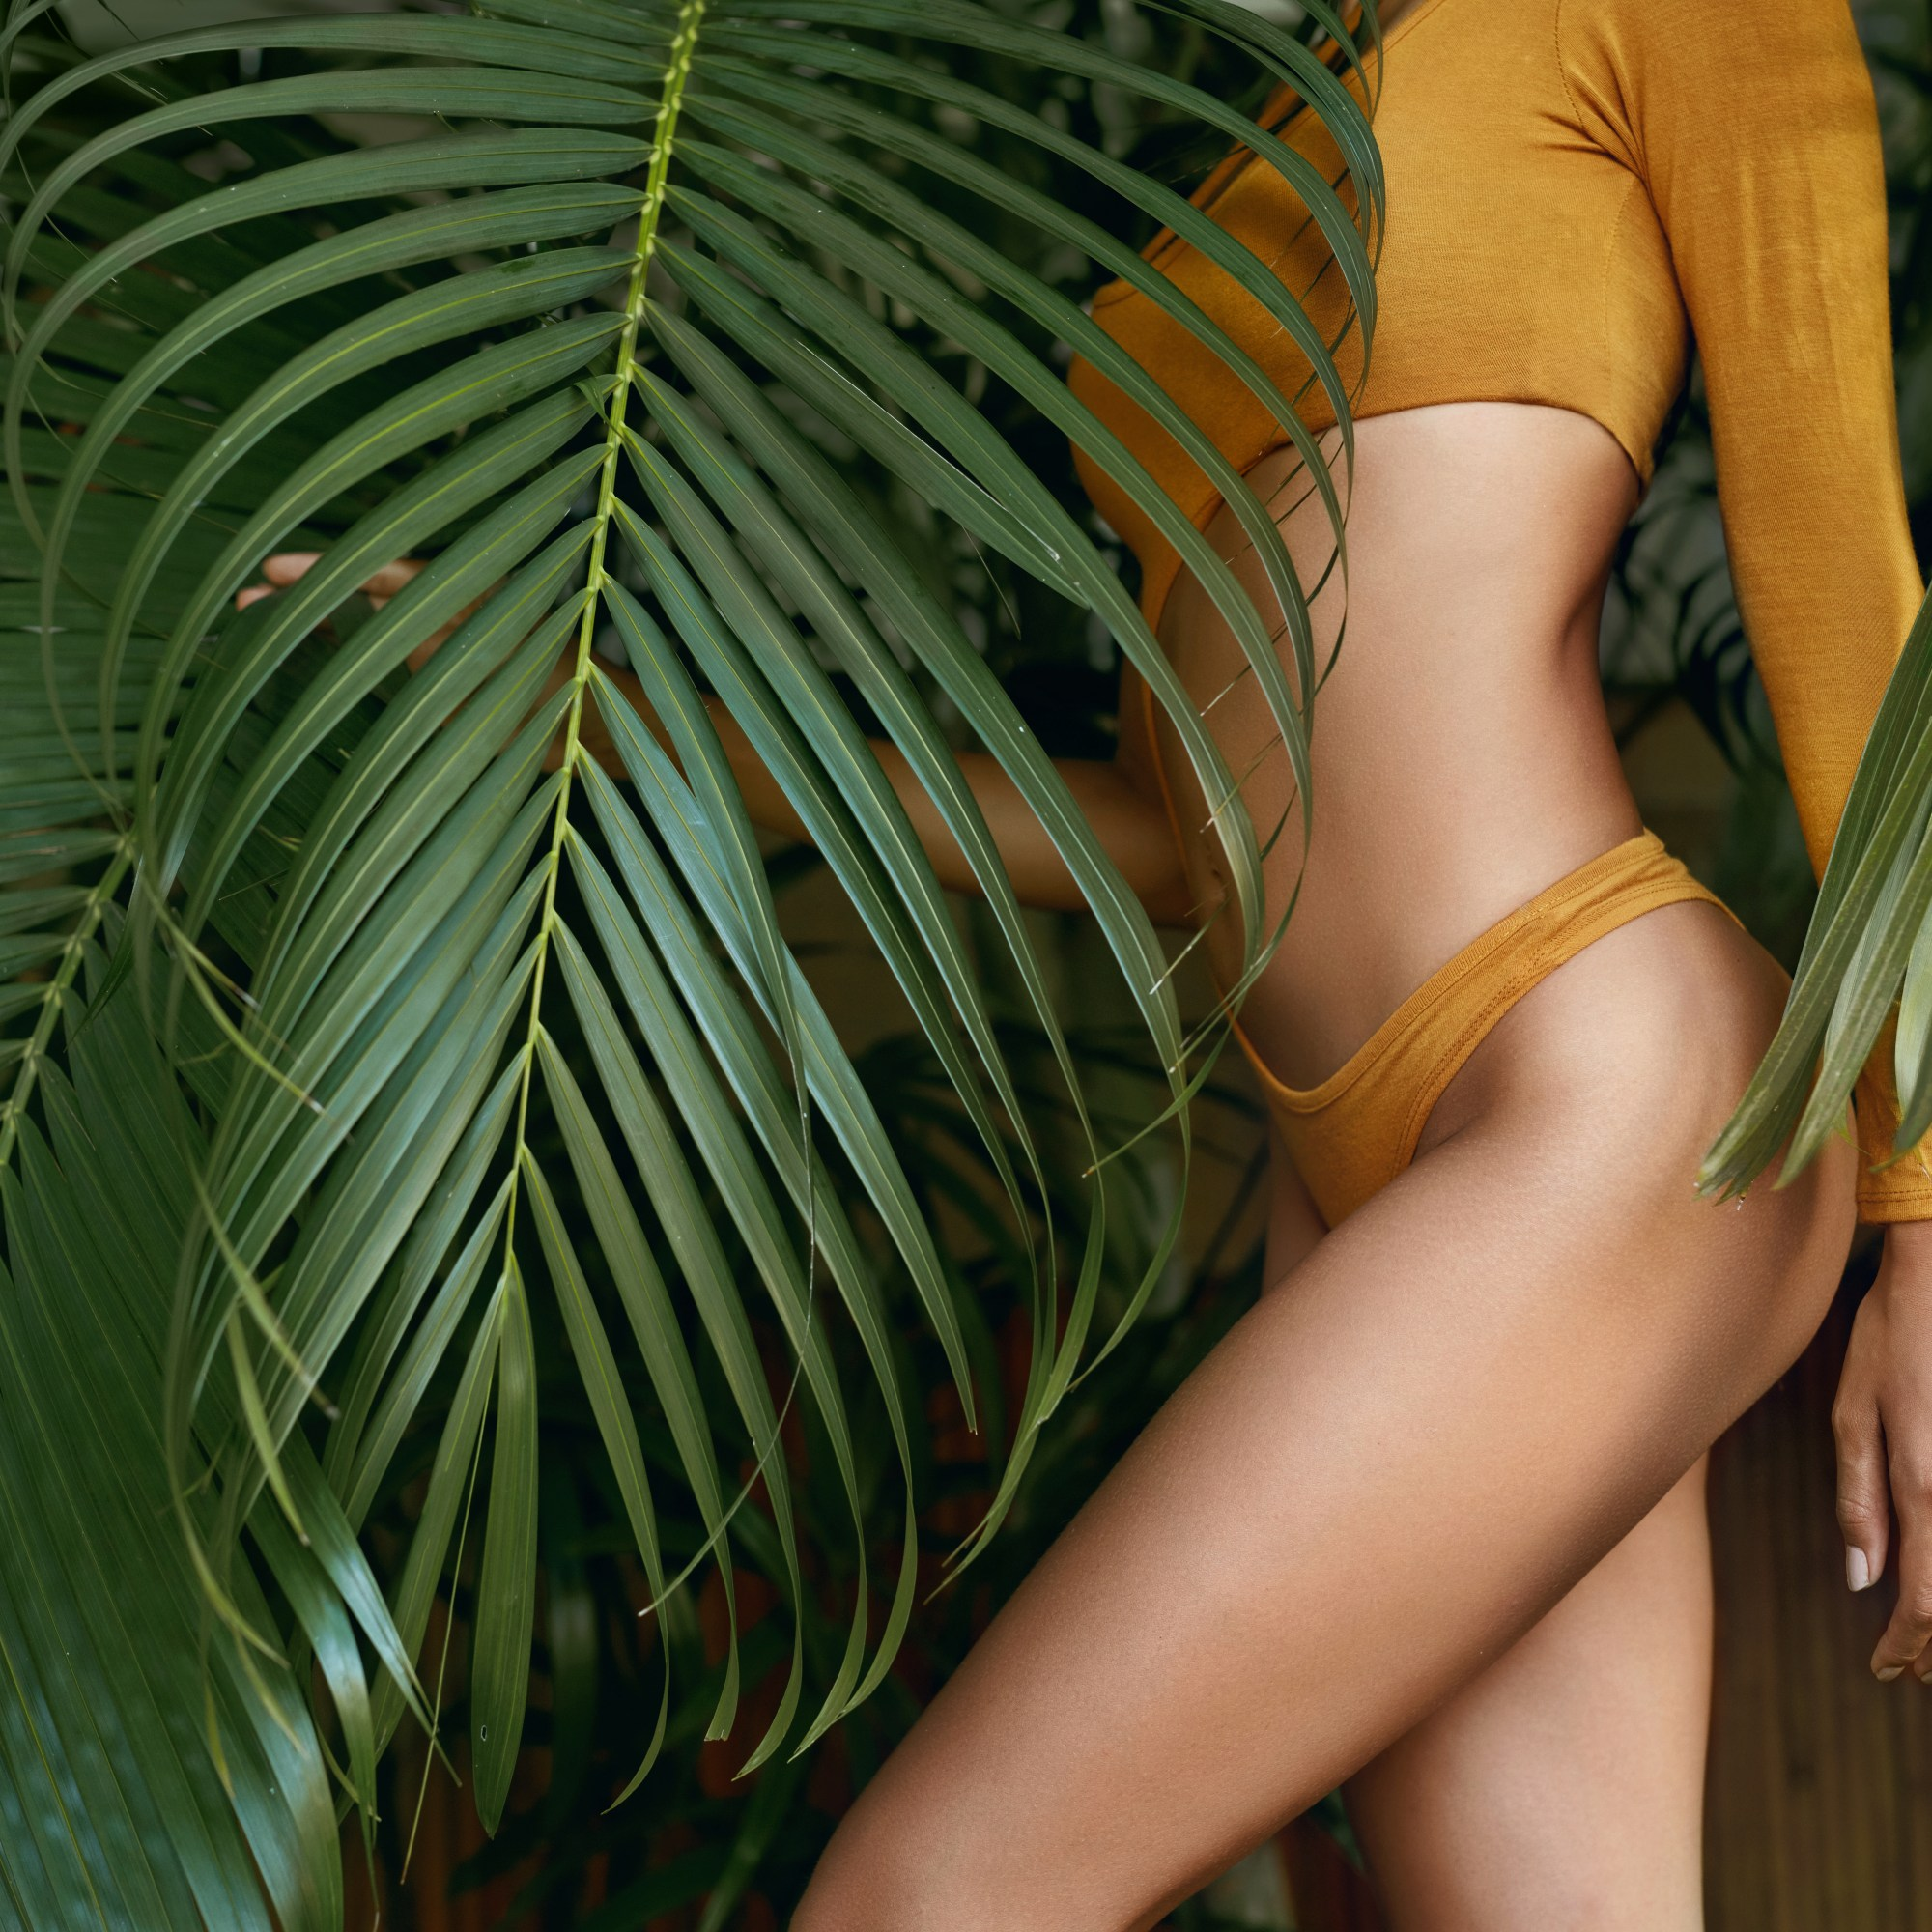 Liposuction, Coolsculpting and wellness treatments in Houston, TX.